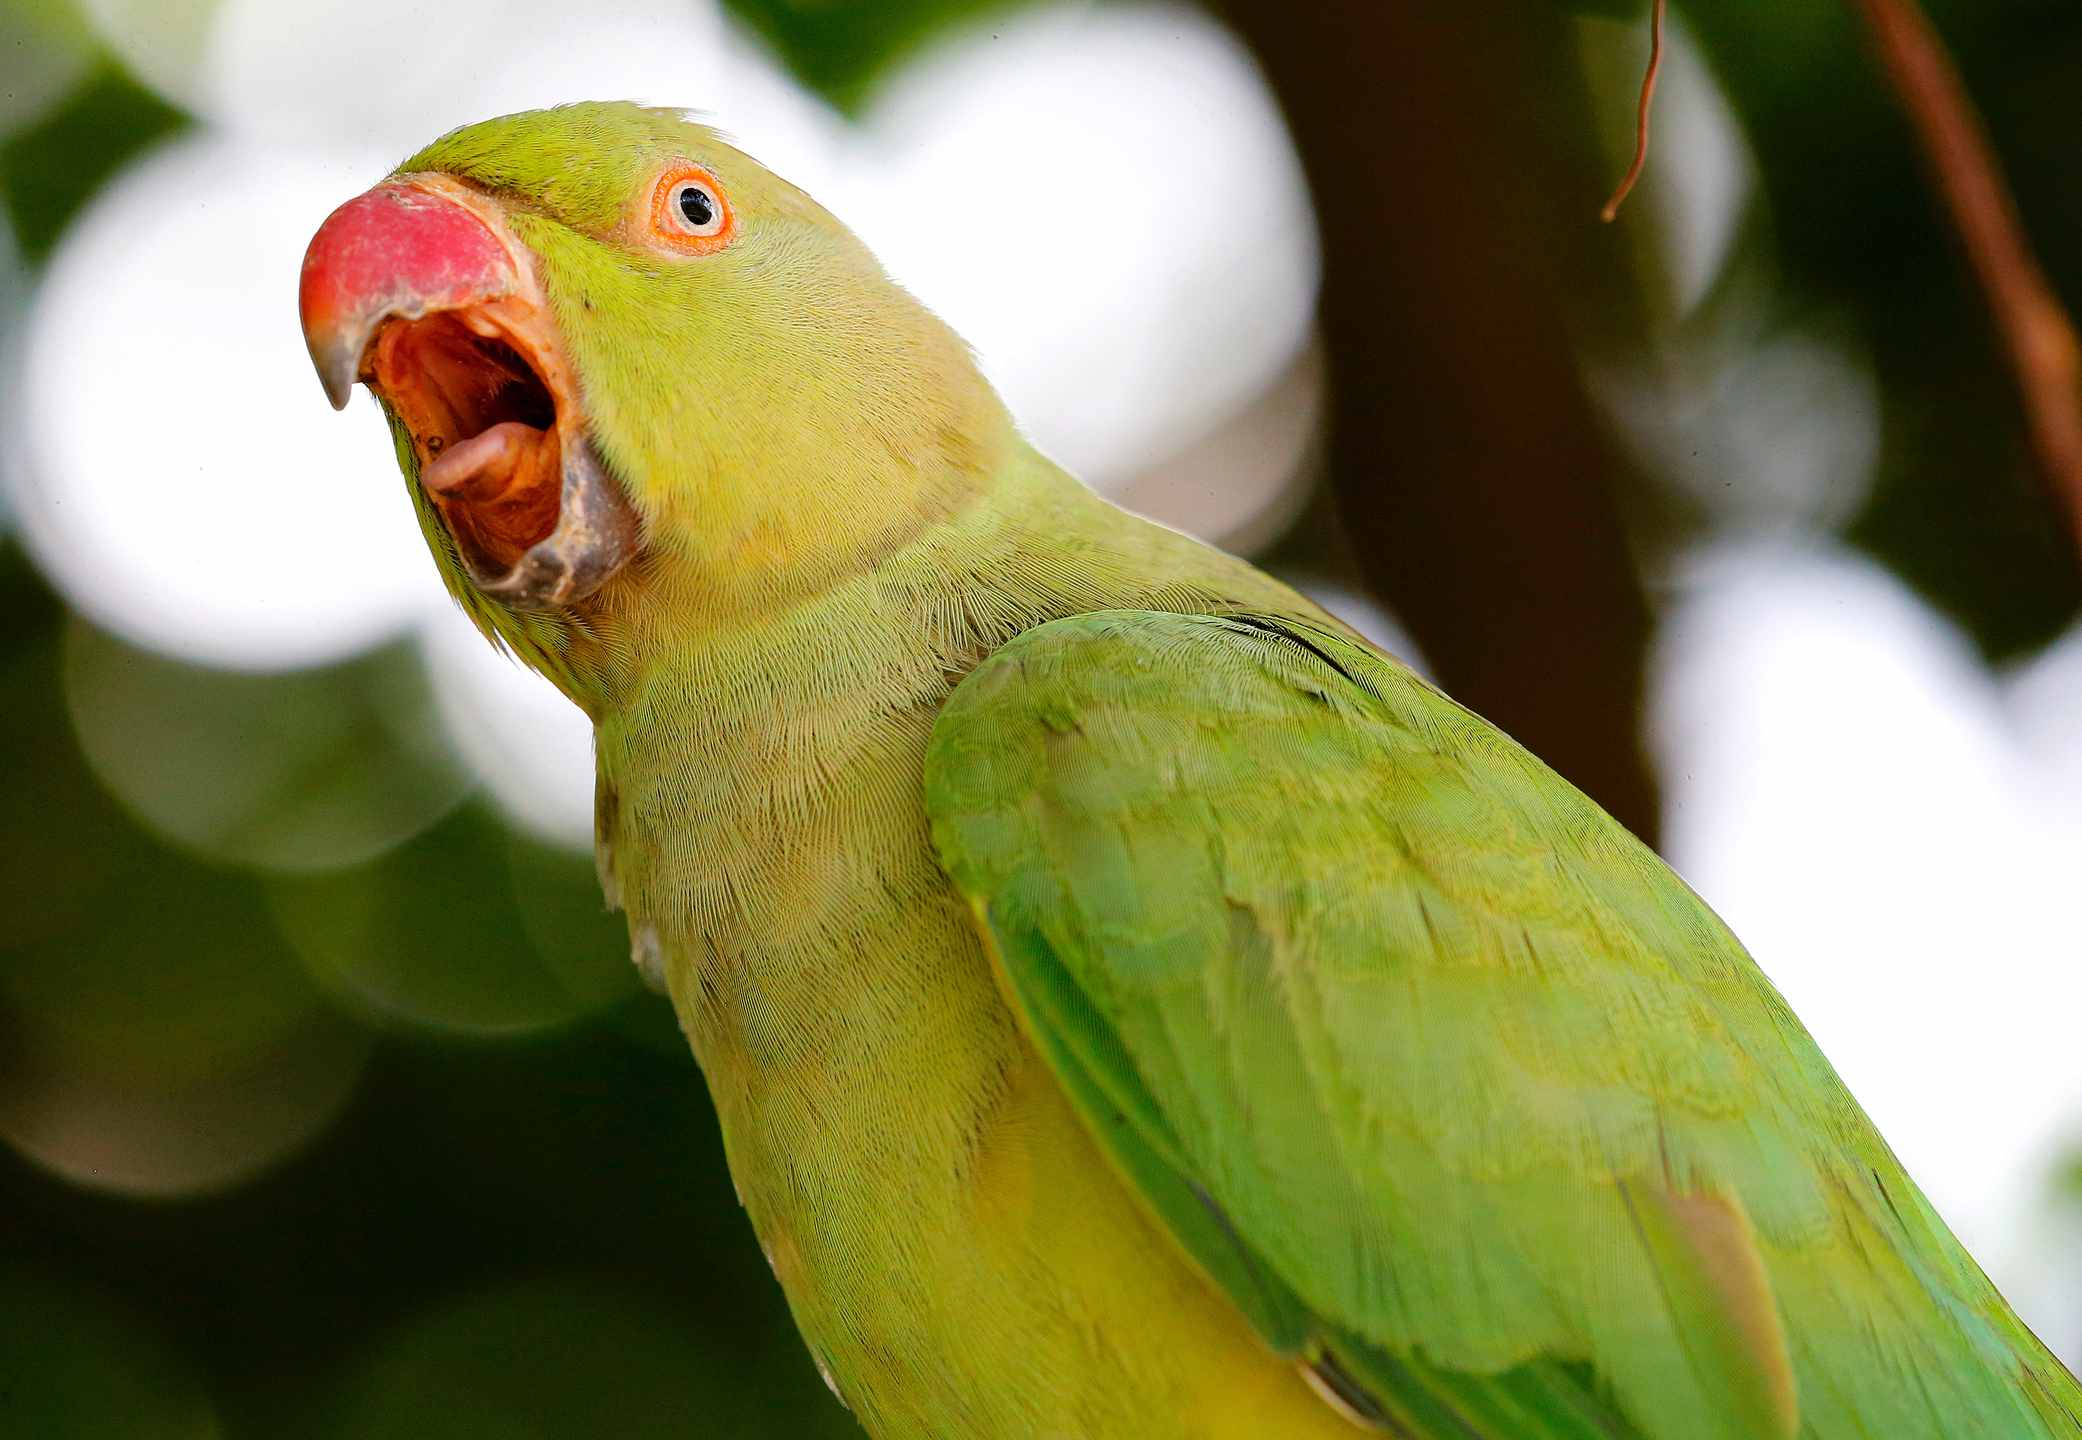 Green and yellow parrot squawking.